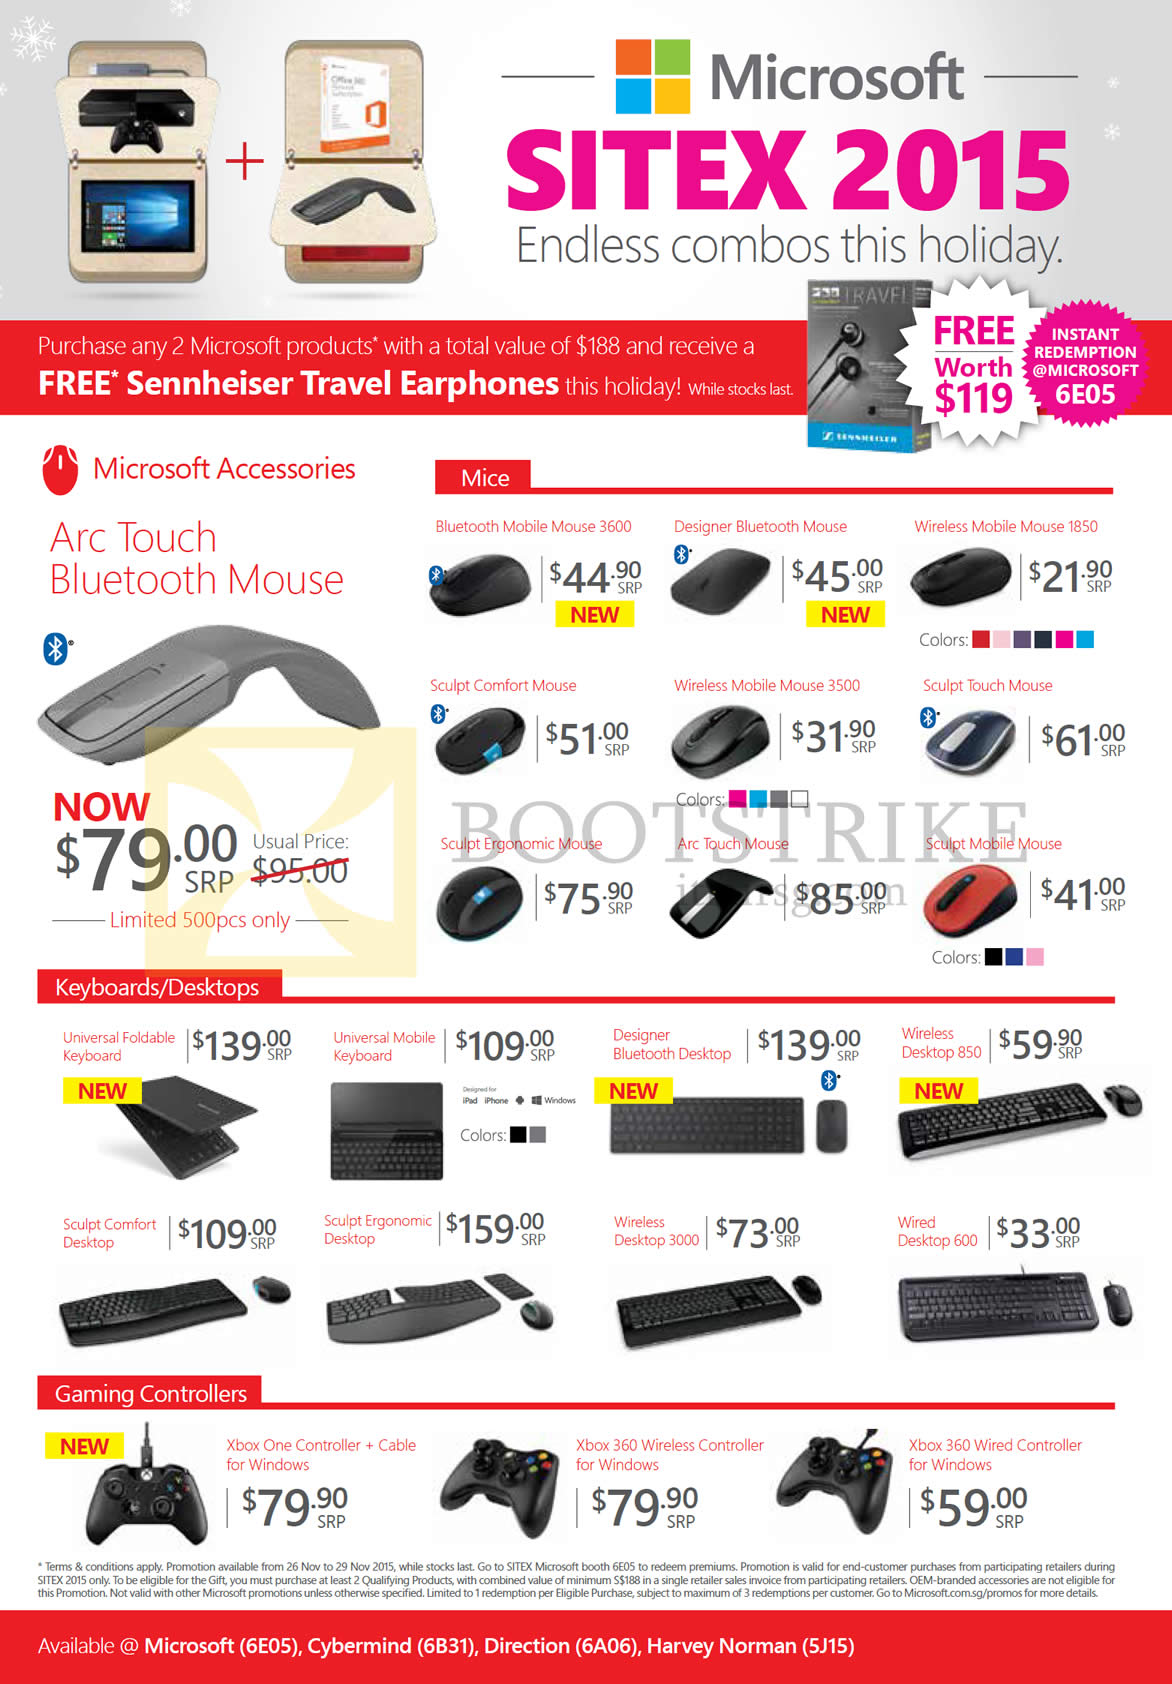 SITEX 2015 price list image brochure of Microsoft Hardware Accessories Mouse, Keyboards, Desktops, Gaming Controllers, Arc Touch, Bluetooth, Wireless Mobile, Sculpt Comfort, Ergonomic, Foldable, Designer, Xbox One 360